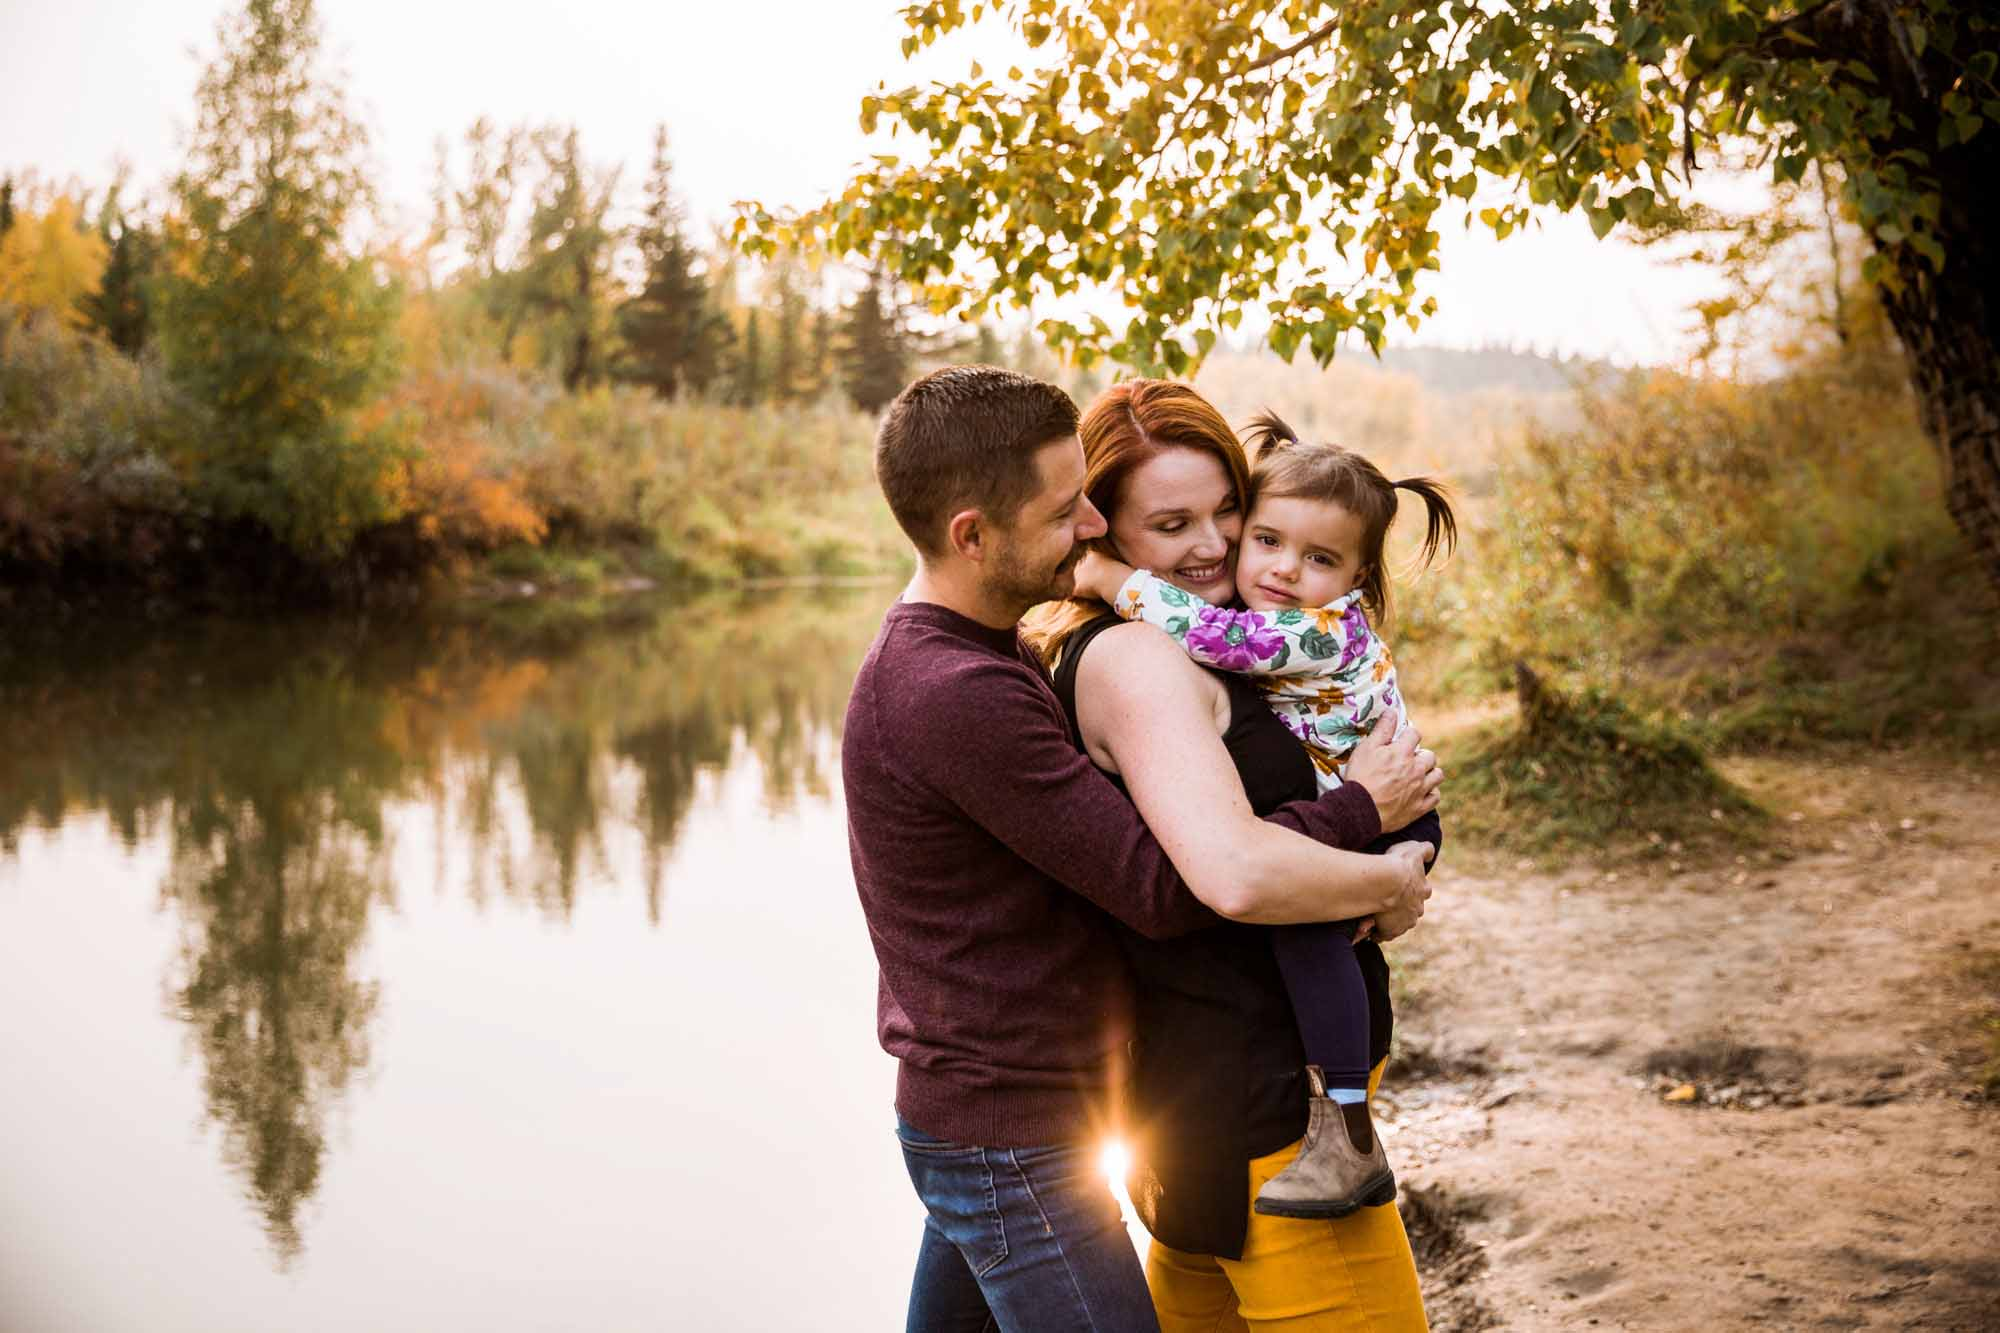 Calgary family photographer, photography session at Fish Creek Park in Calgary